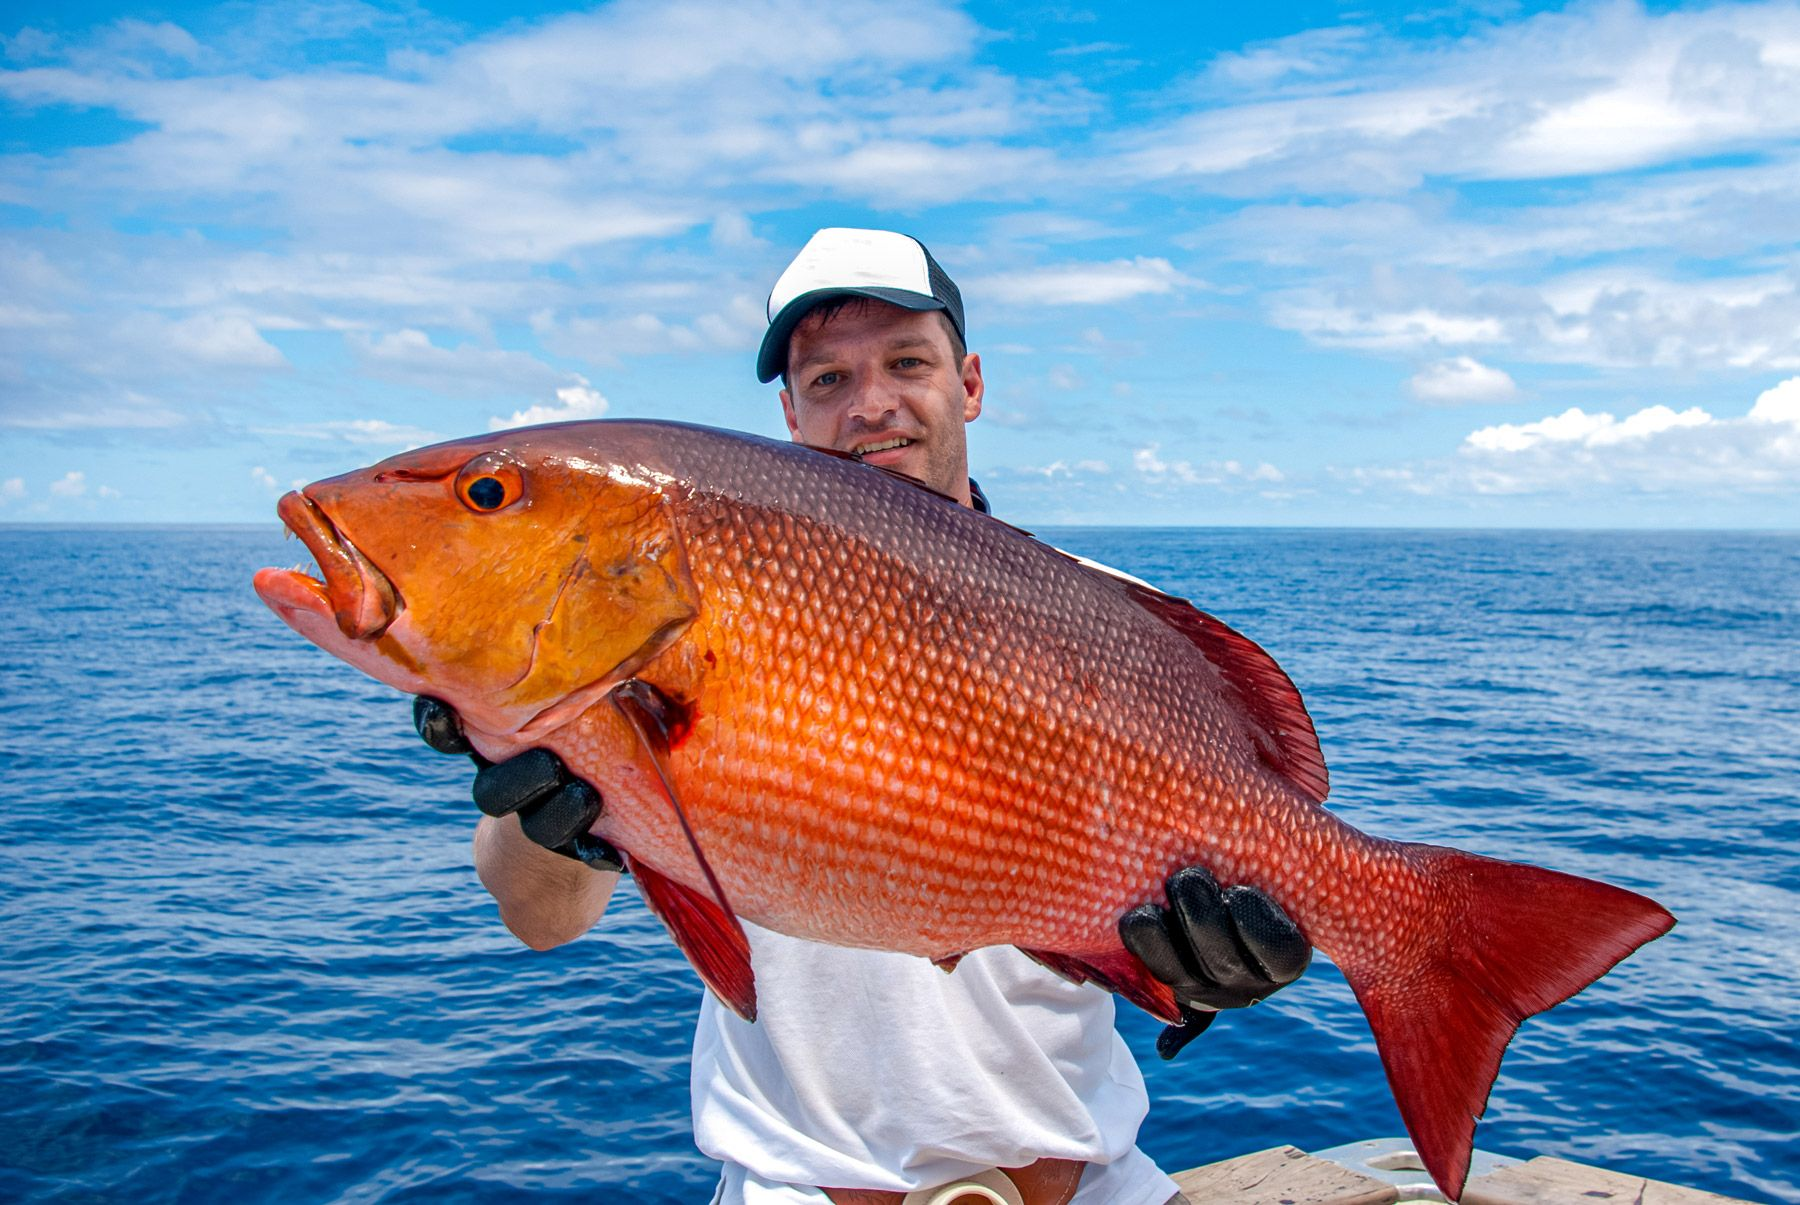 fisherman holding red snapper